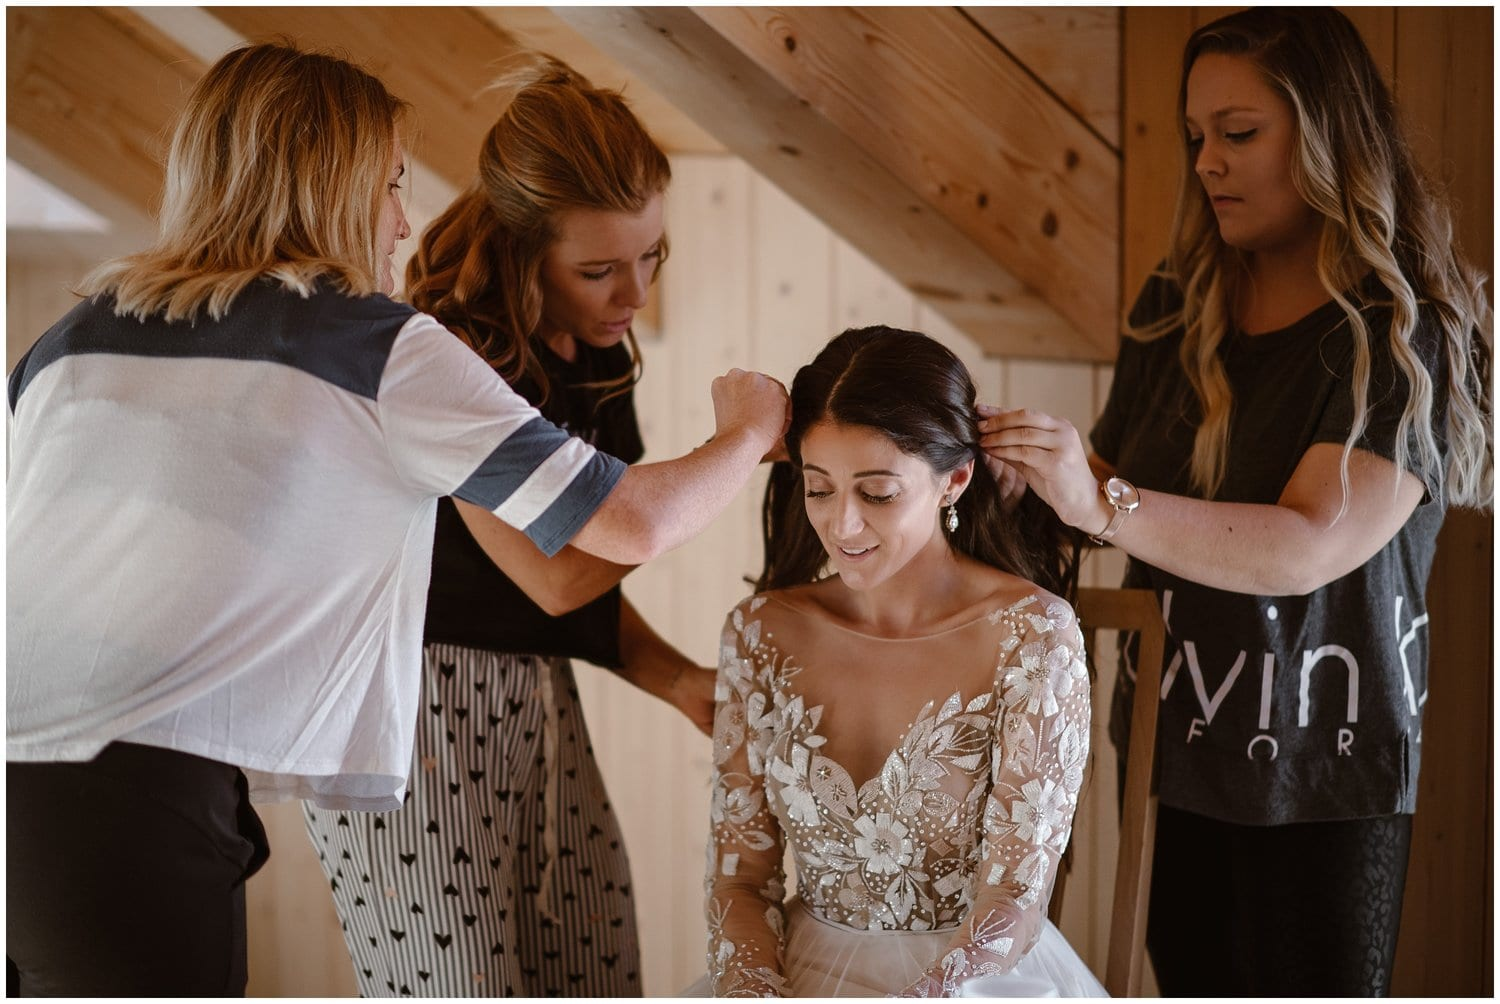 A bride sits in a chair while three women help with pin up her hair.